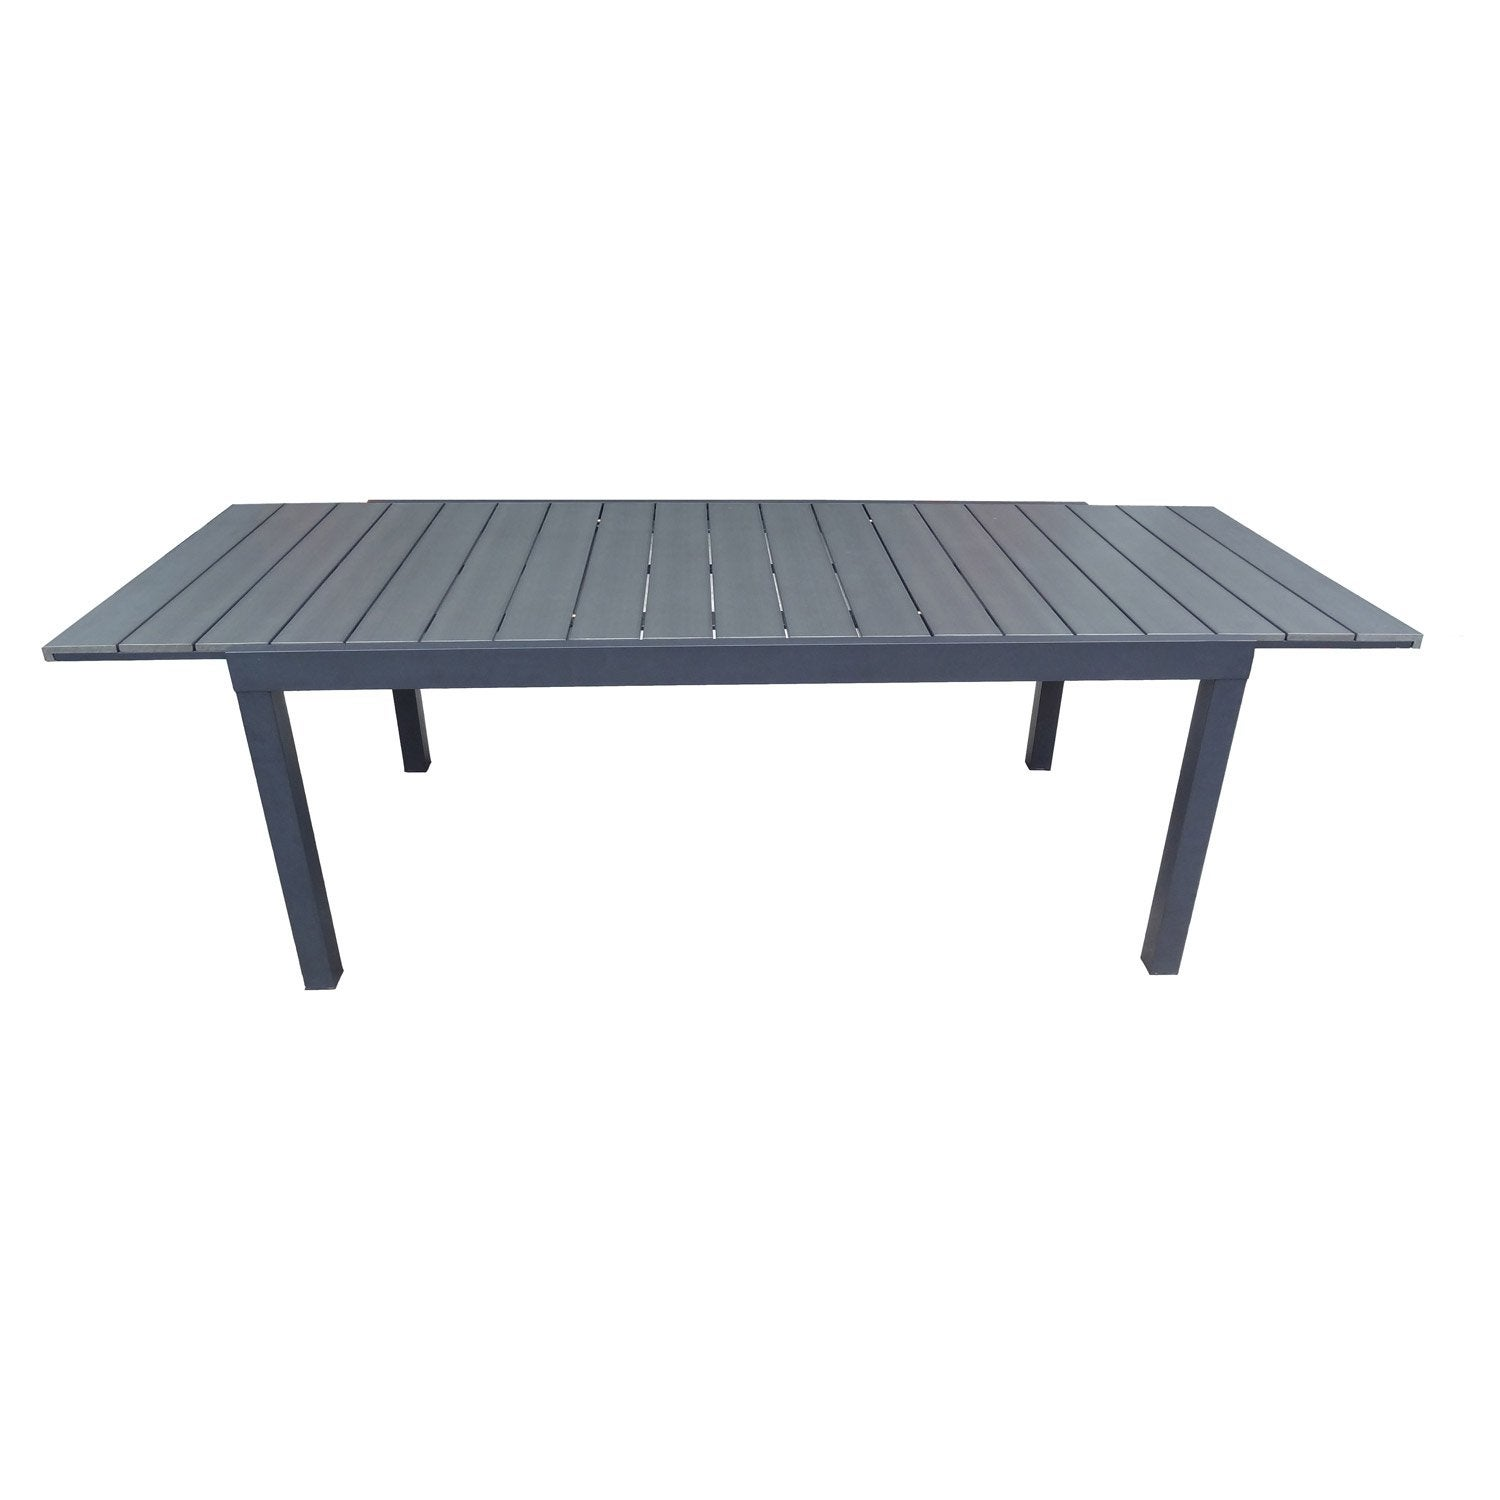 Table de jardin naterial pratt rectangulaire gris leroy merlin - Table de jardin extensible en plastique ...